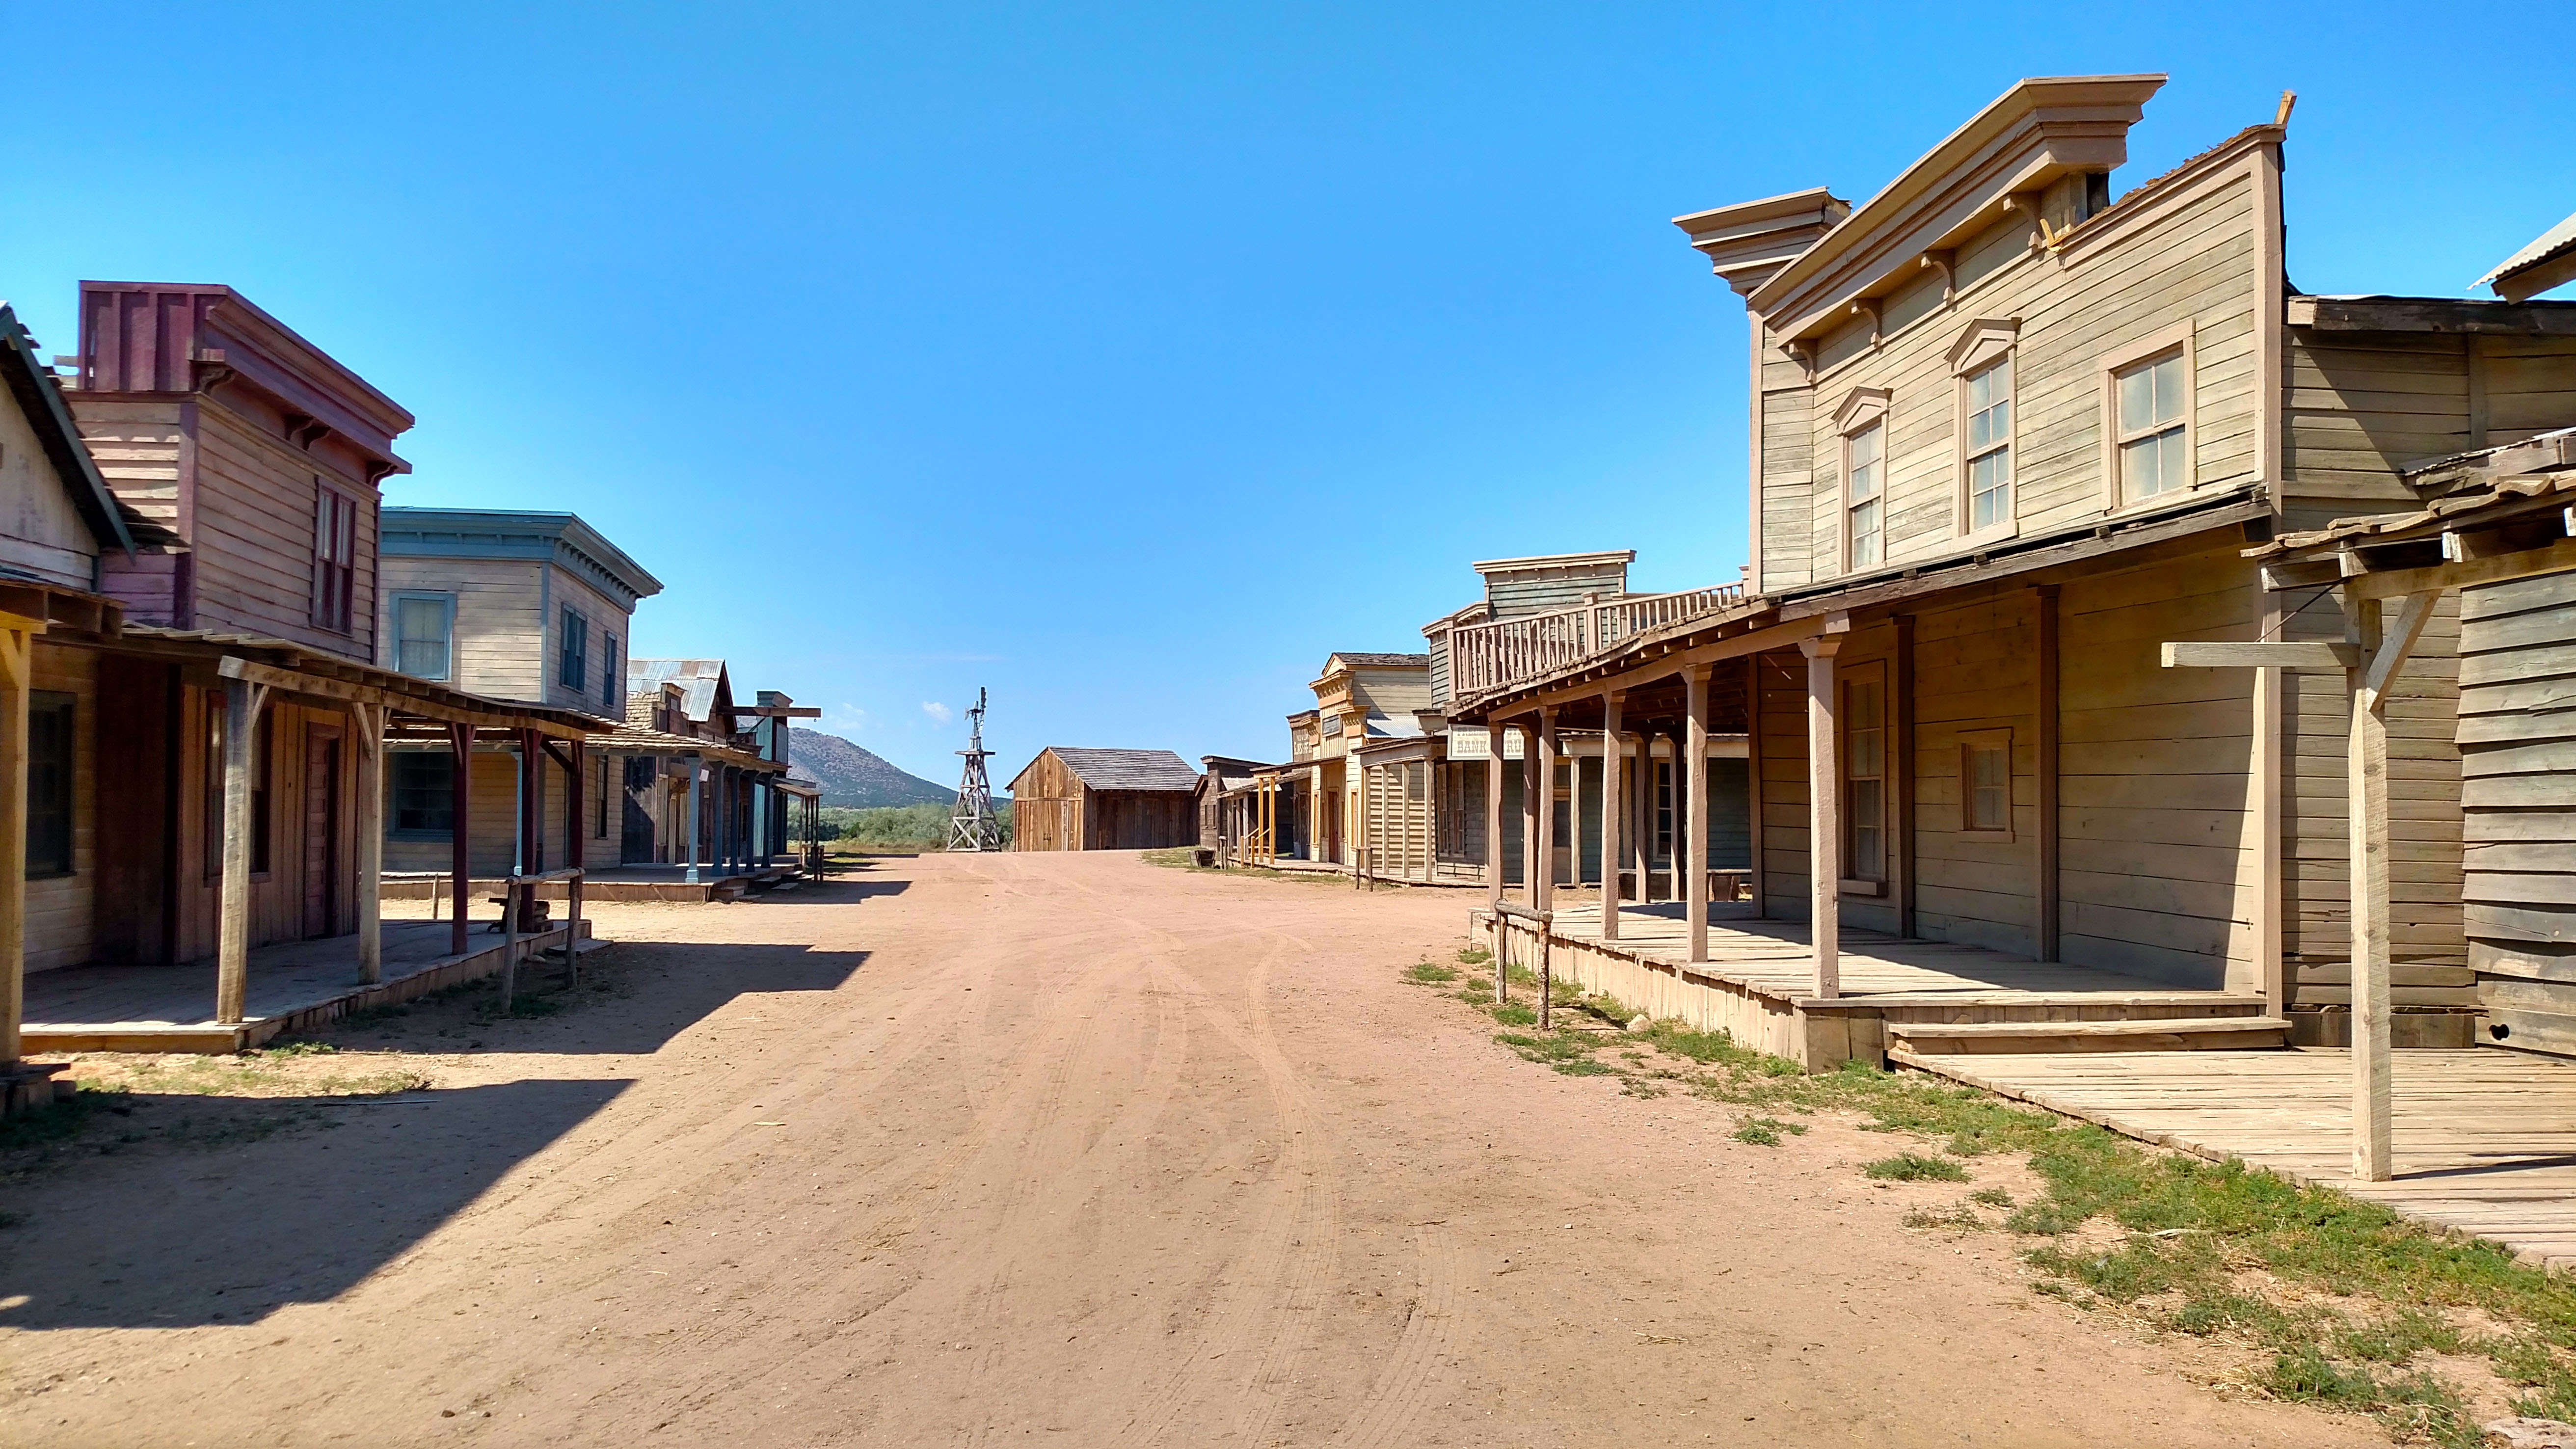 bonanza creek movie studio tourjeep tours in santa fe